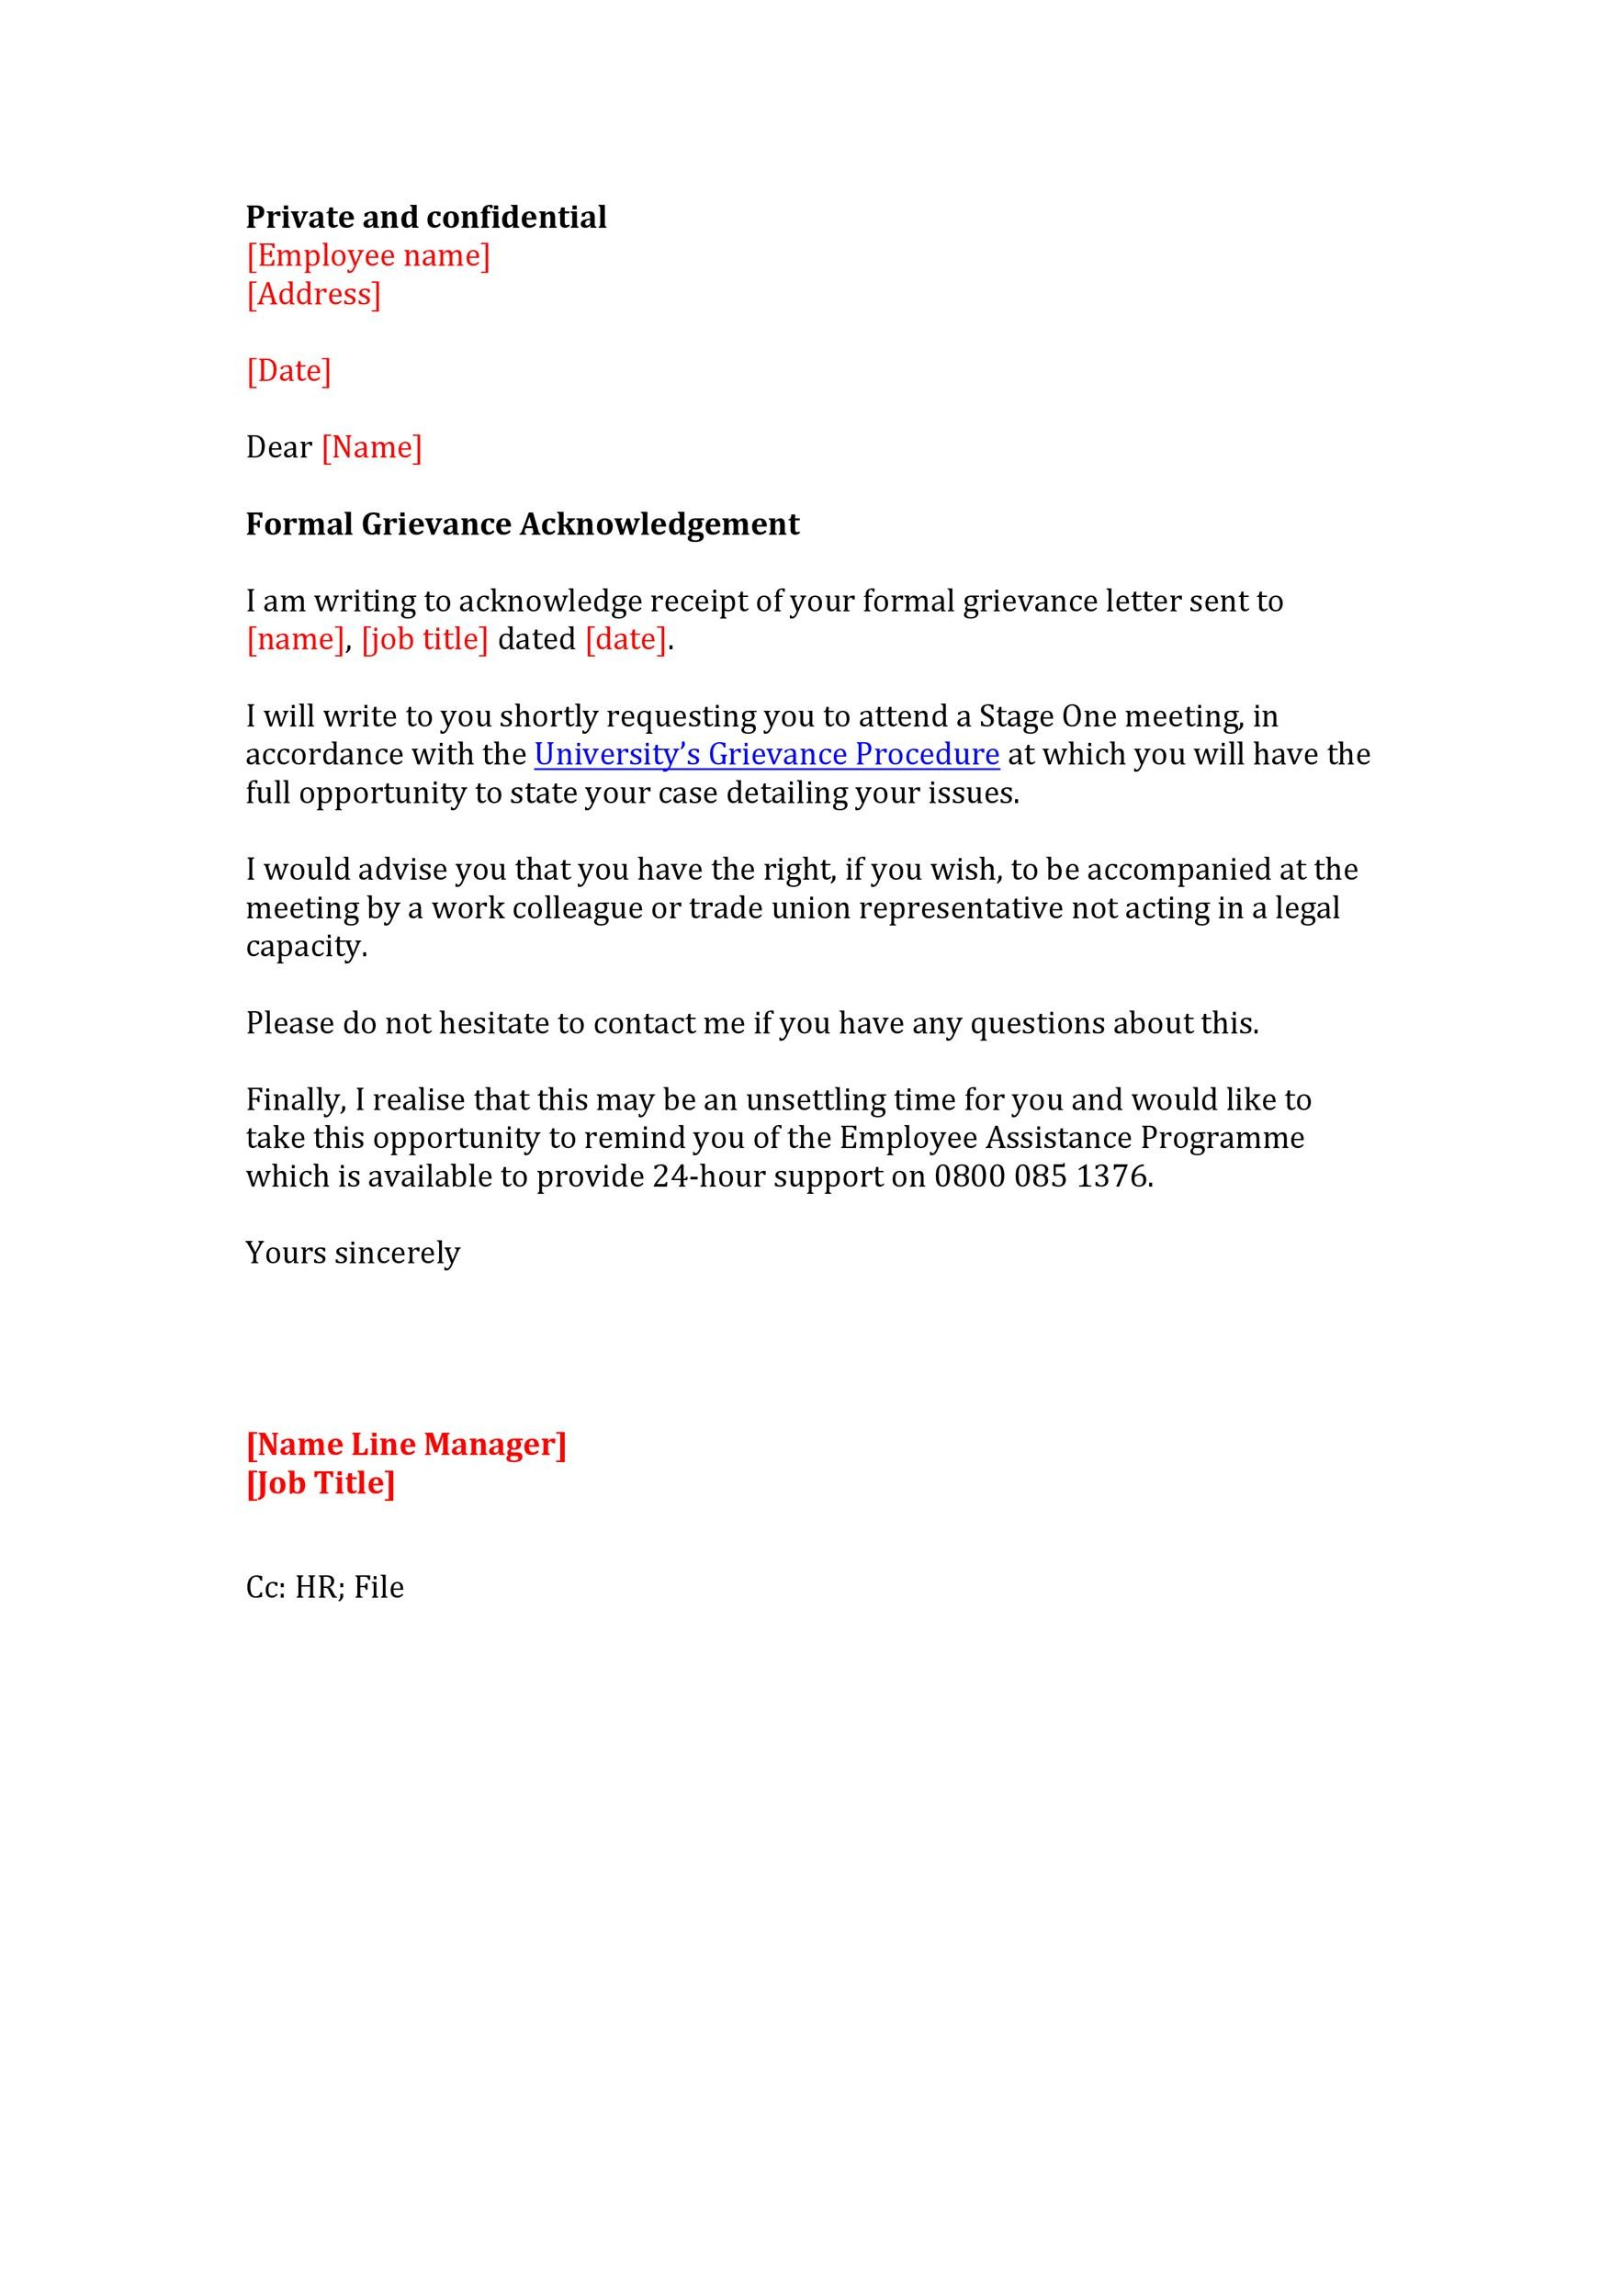 Union Grievance Response Letter from templatelab.com